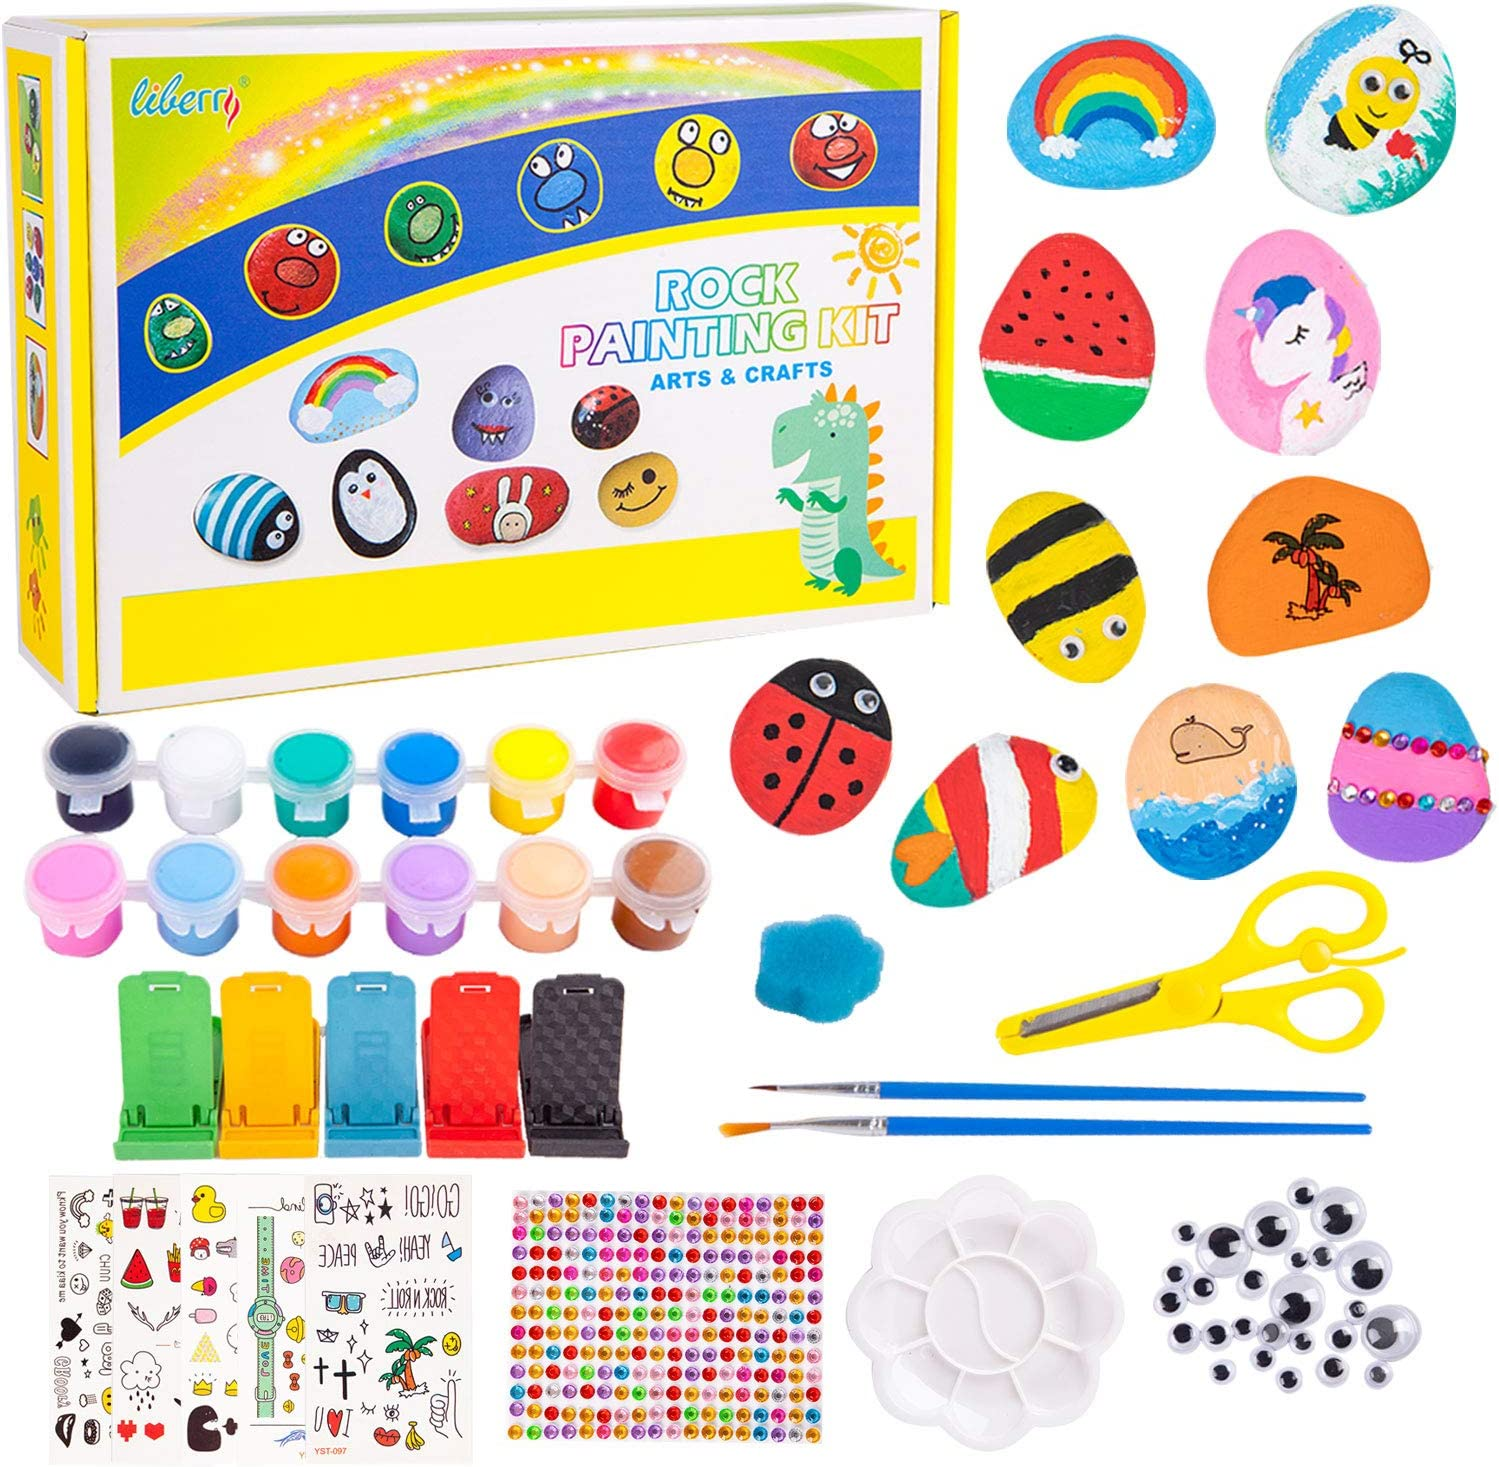 50% Off Coupon – Rock Painting Kit for Kids